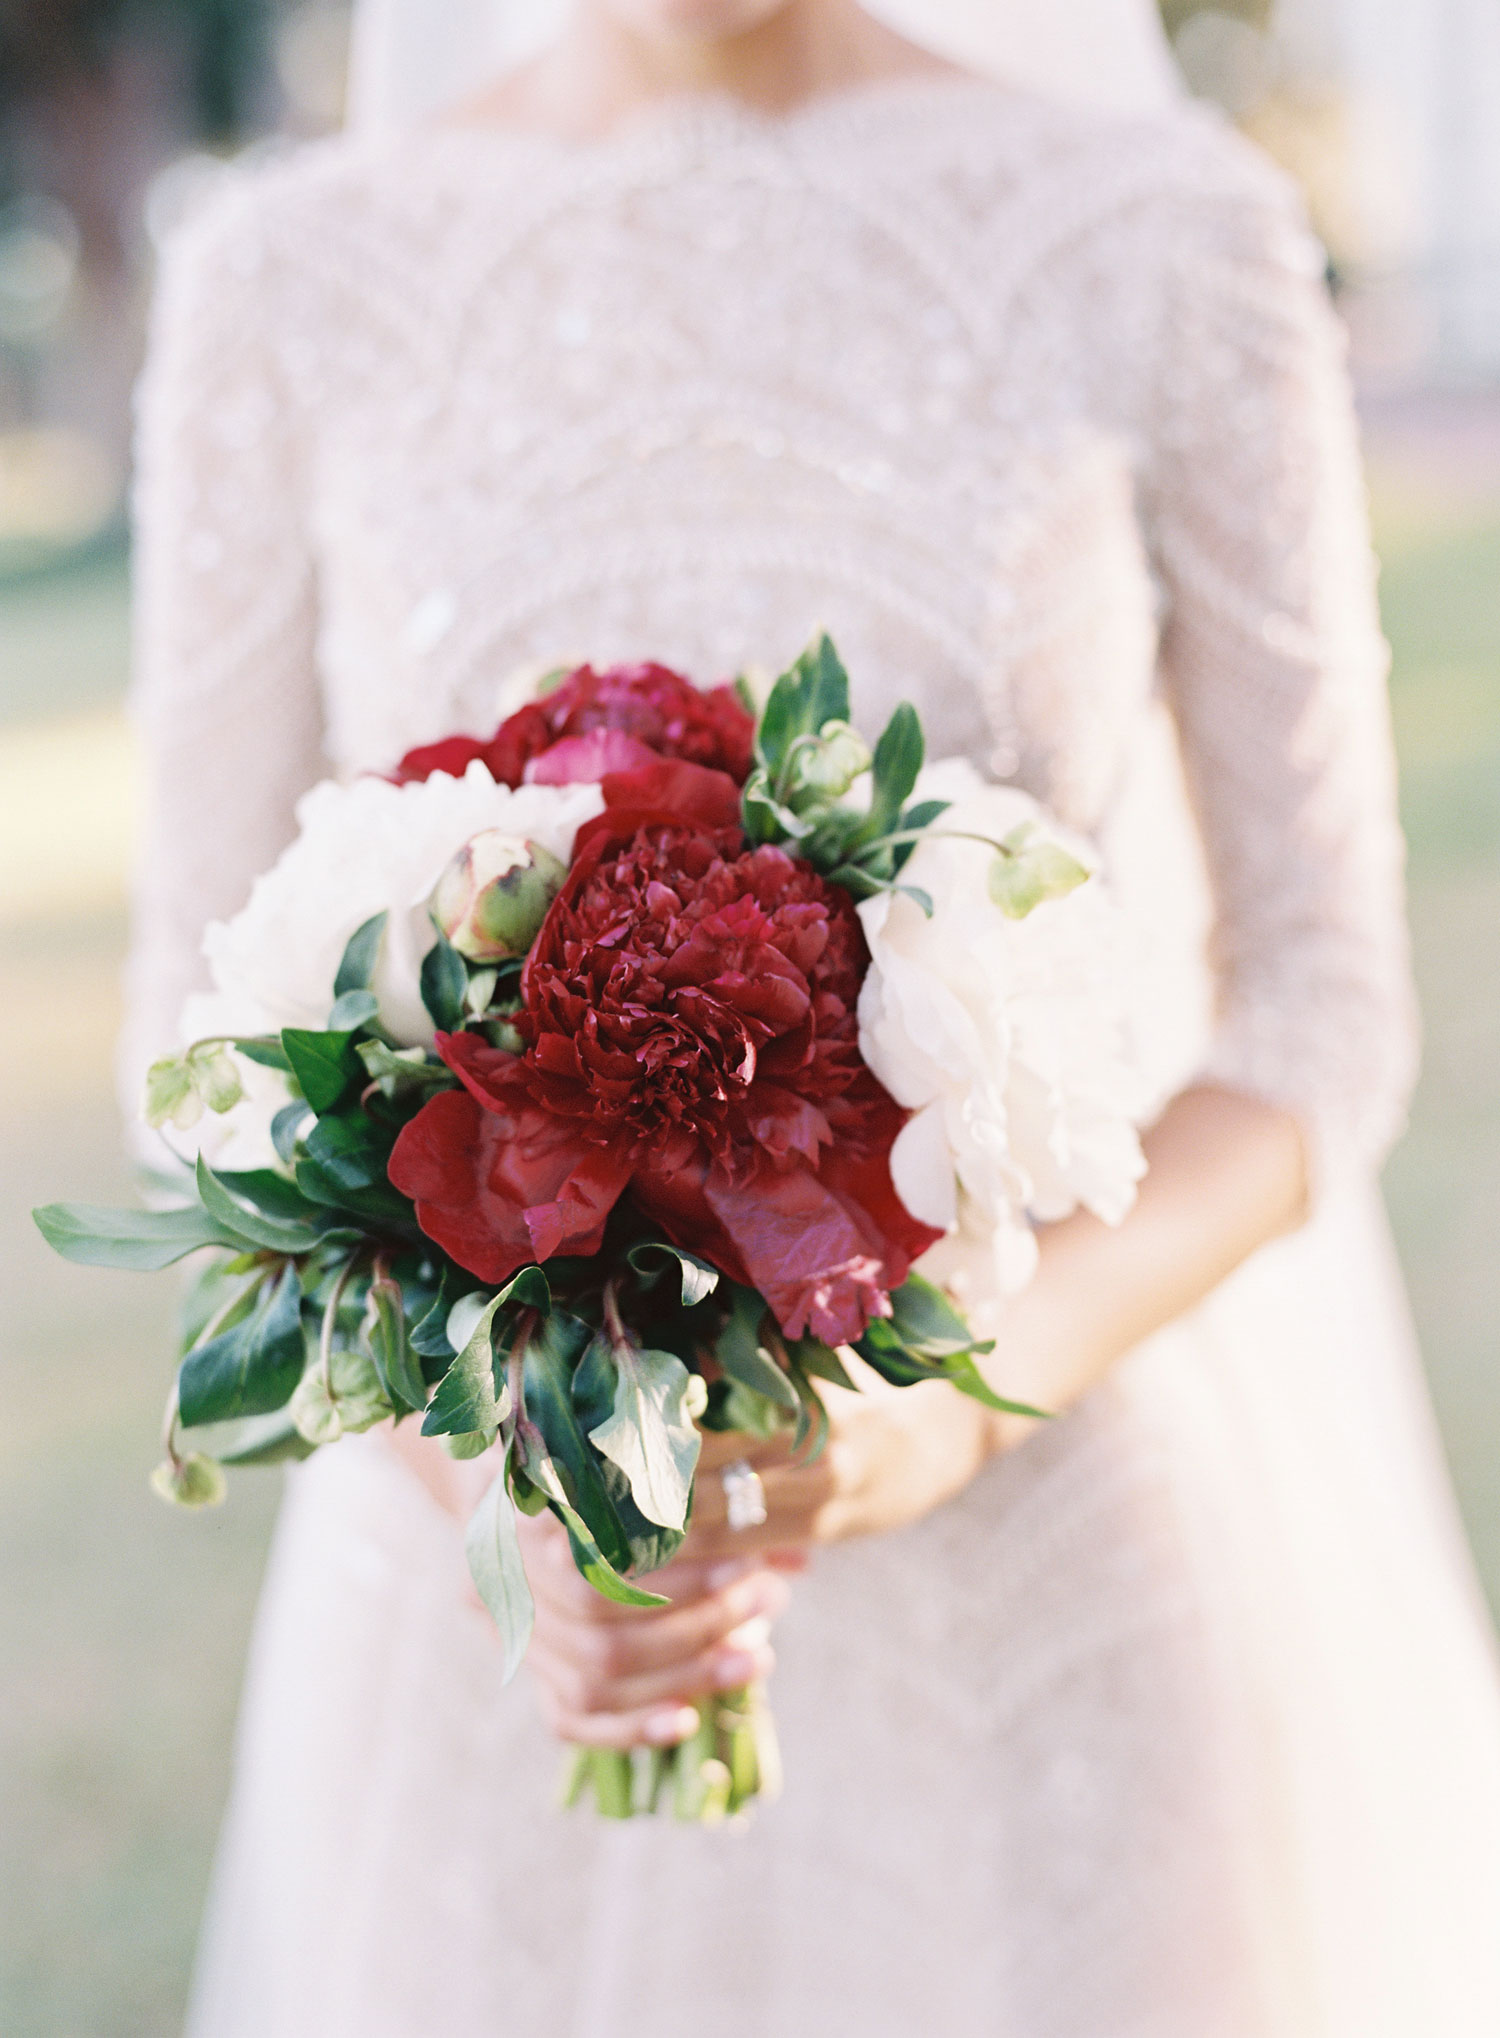 Small wedding bouquet for fall wedding peony flowers burgundy white